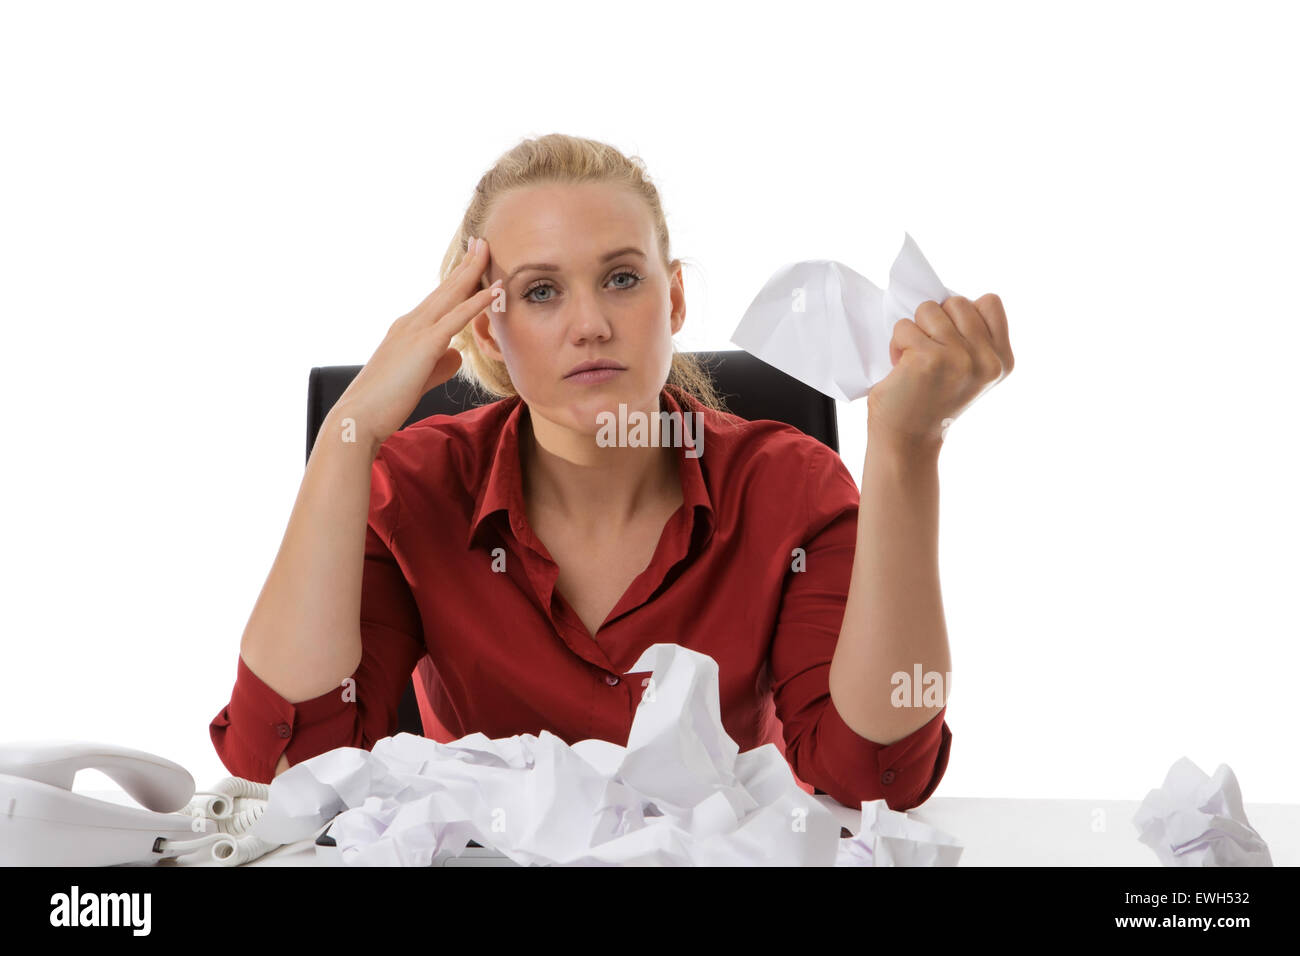 screwed up ball paper on stock photos  u0026 screwed up ball